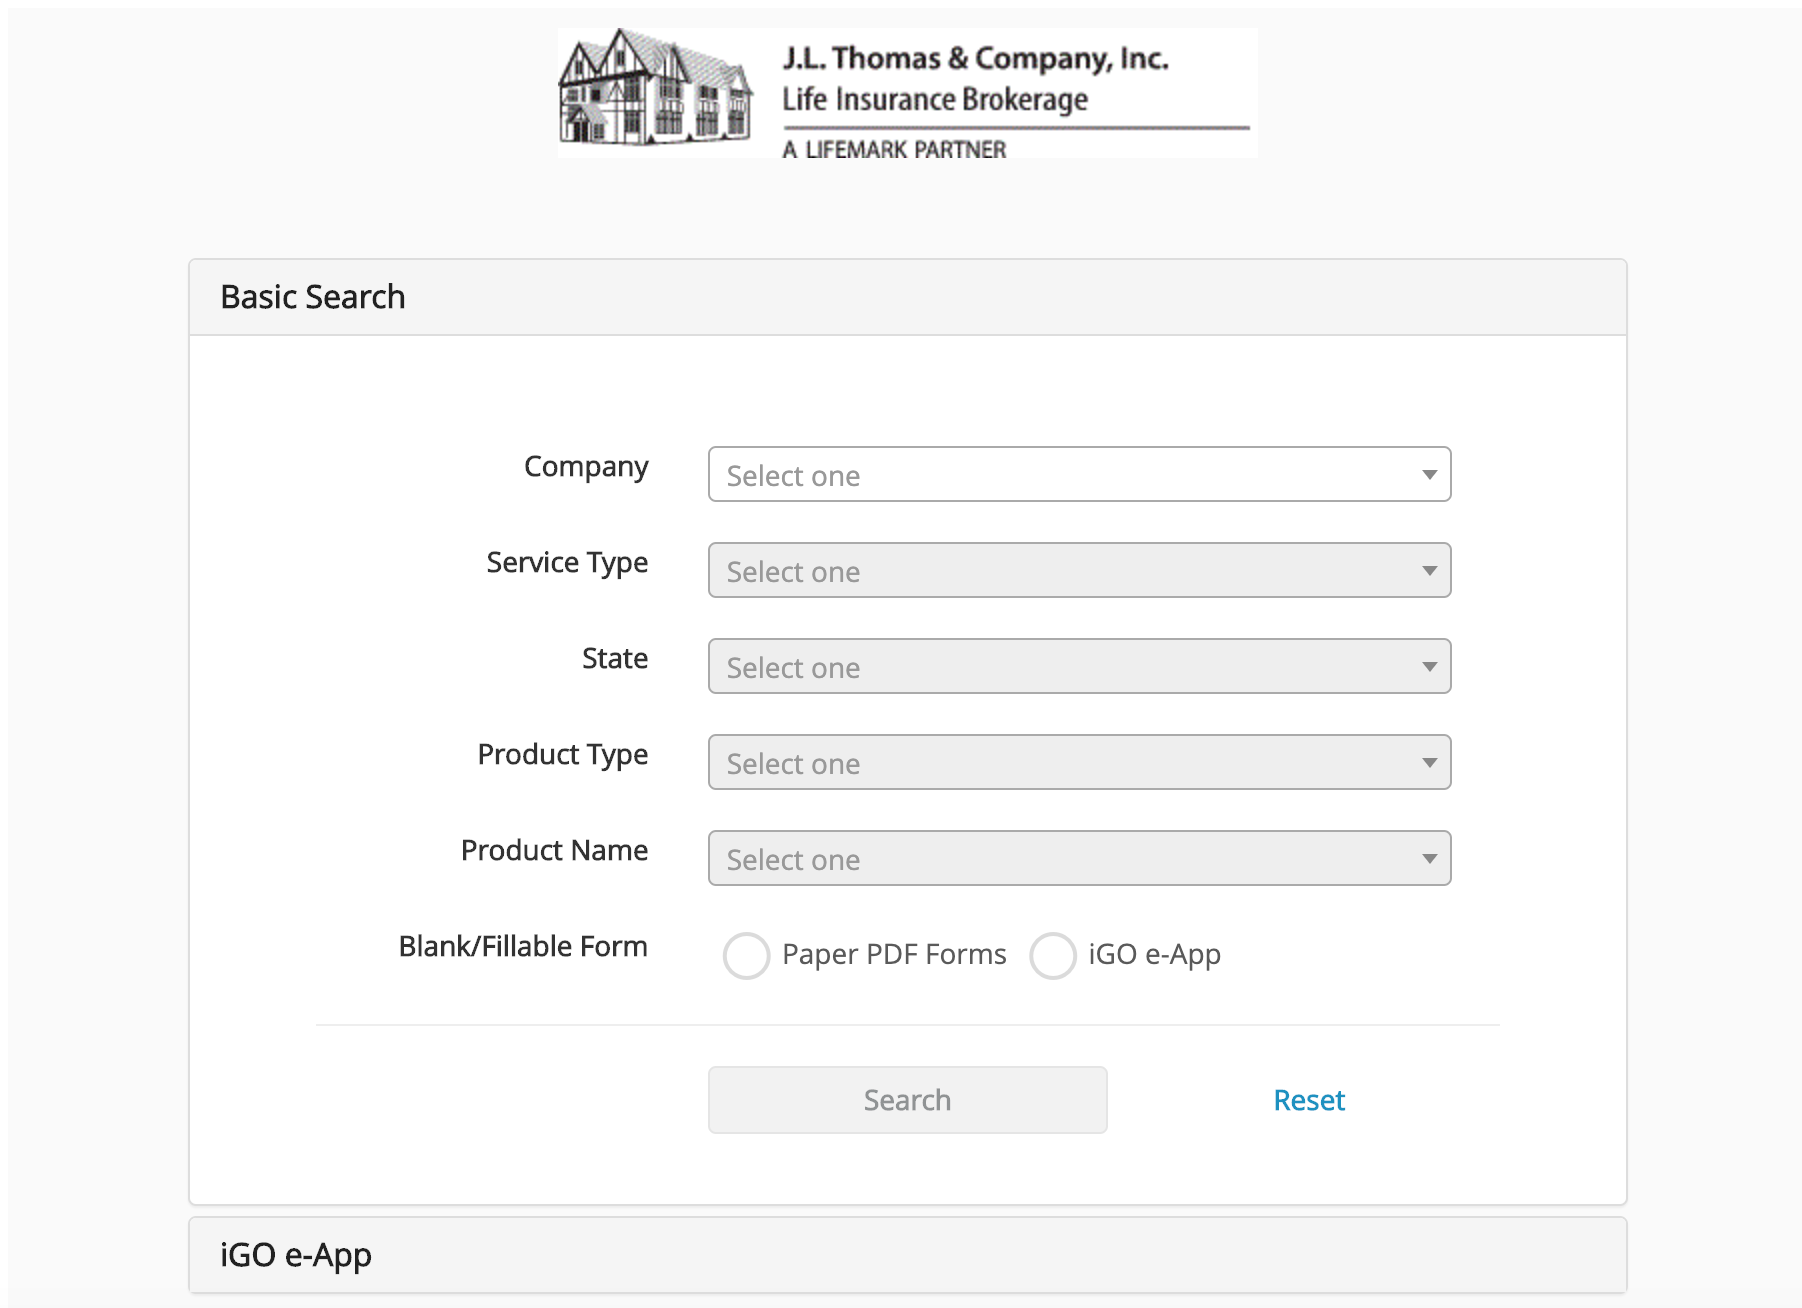 Image of form engine used by insurance professionals to download forms for various insurance companies for life insurance, long term care insurance, disability insurance and annuities.